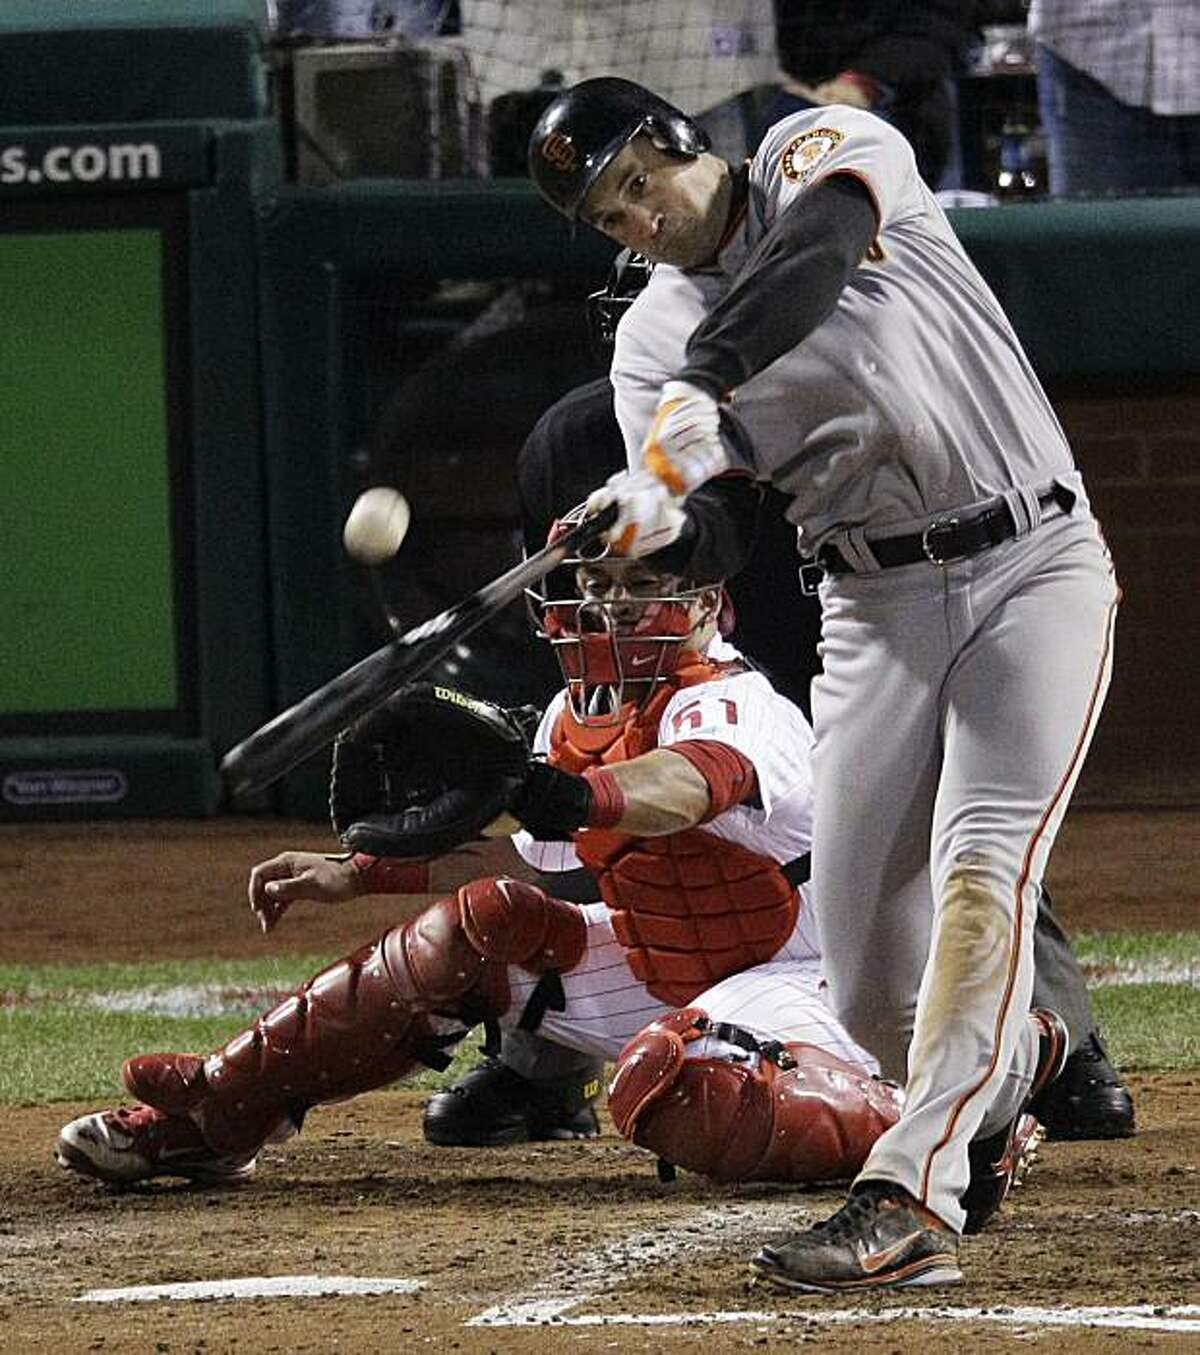 San Francisco Giants' Pat Burrell hits a run-scoring double during the sixth inning of Game 1 of baseball's National League Championship Series against the Philadelphia Phillies Saturday, Oct. 16, 2010, in Philadelphia.